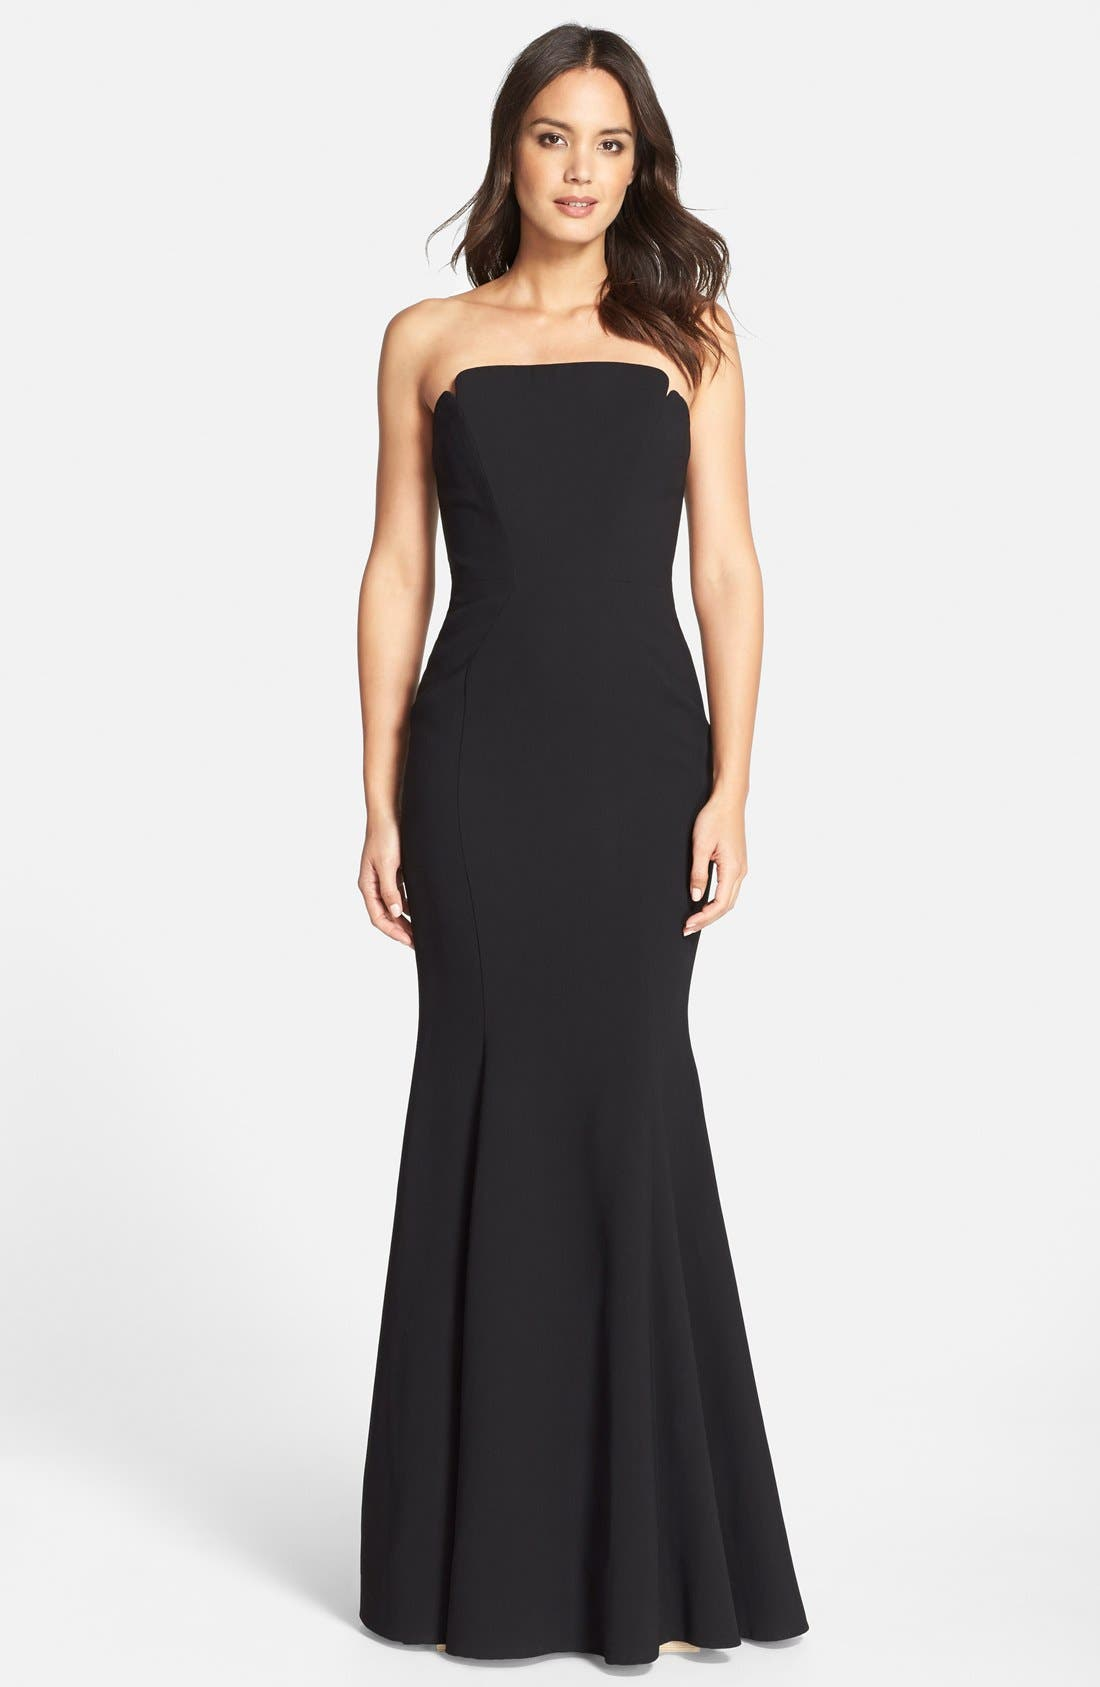 Notched Strapless Gown,                             Main thumbnail 1, color,                             001